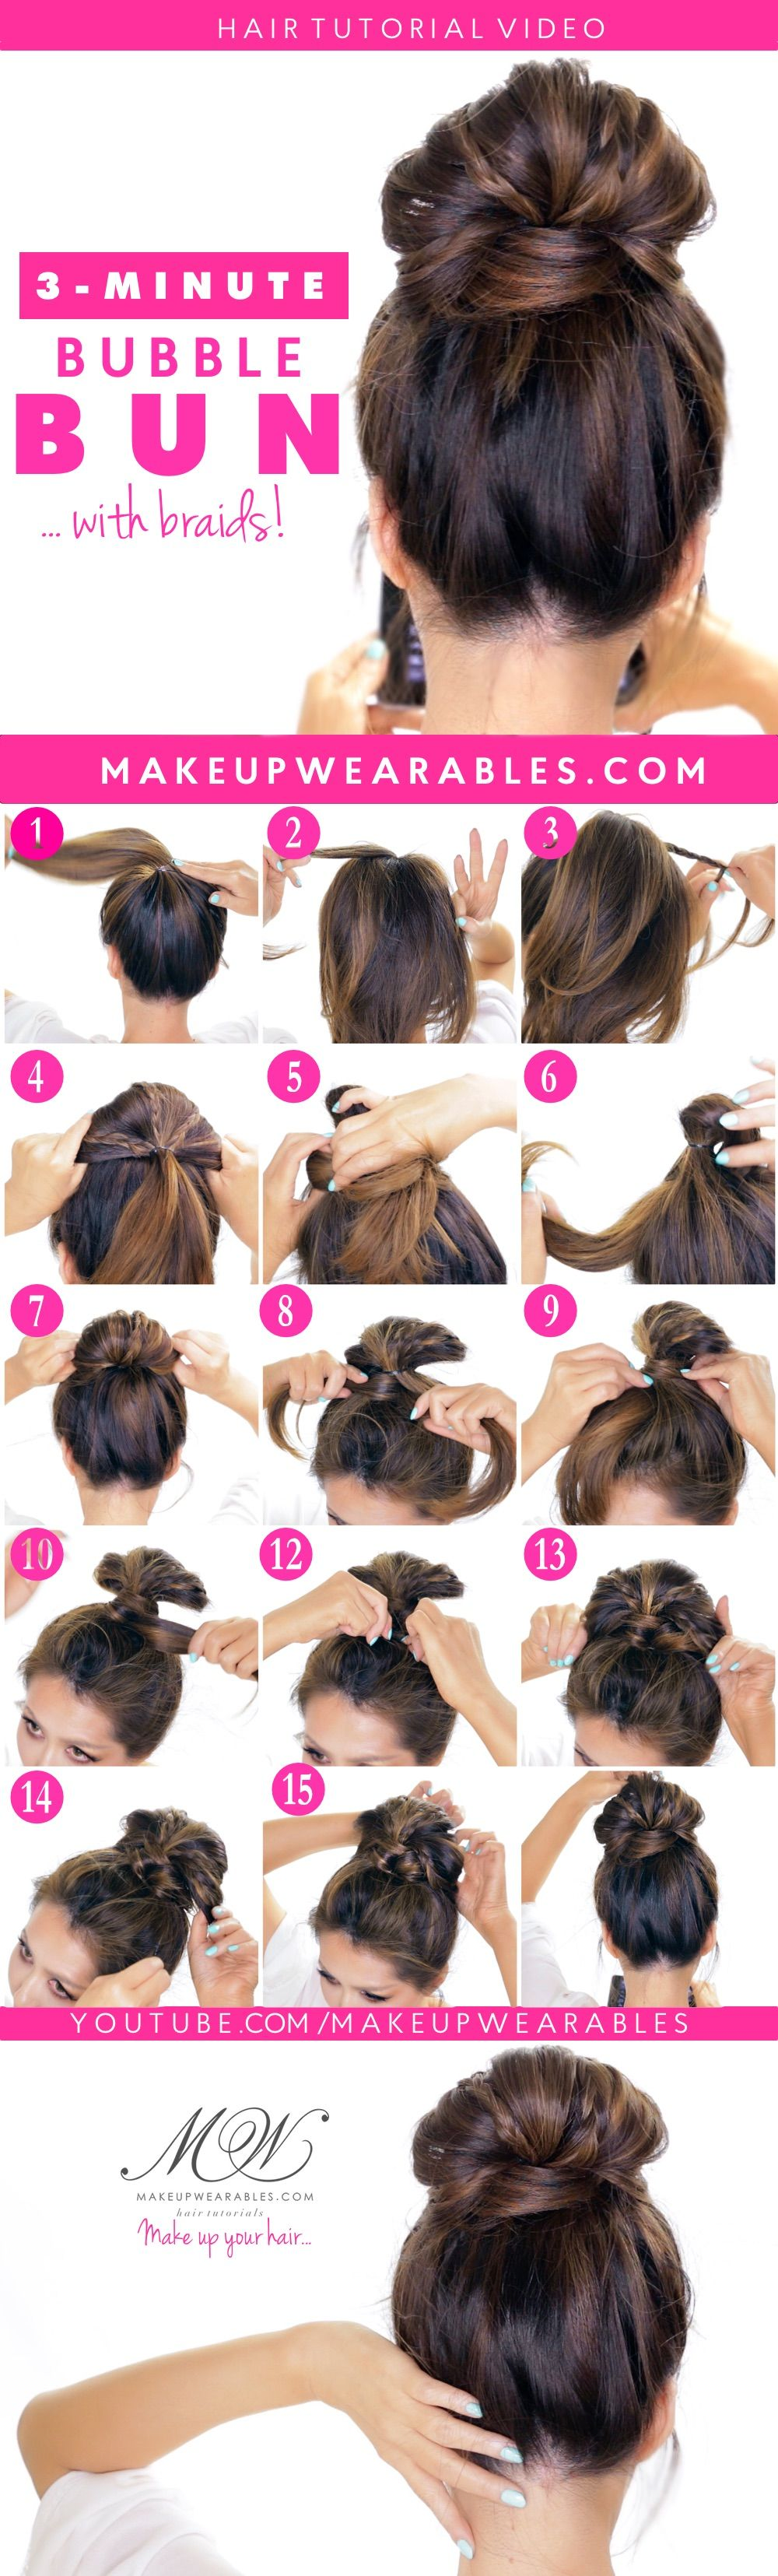 Hair tutorials Starburst Bun and other how to braided messy bun